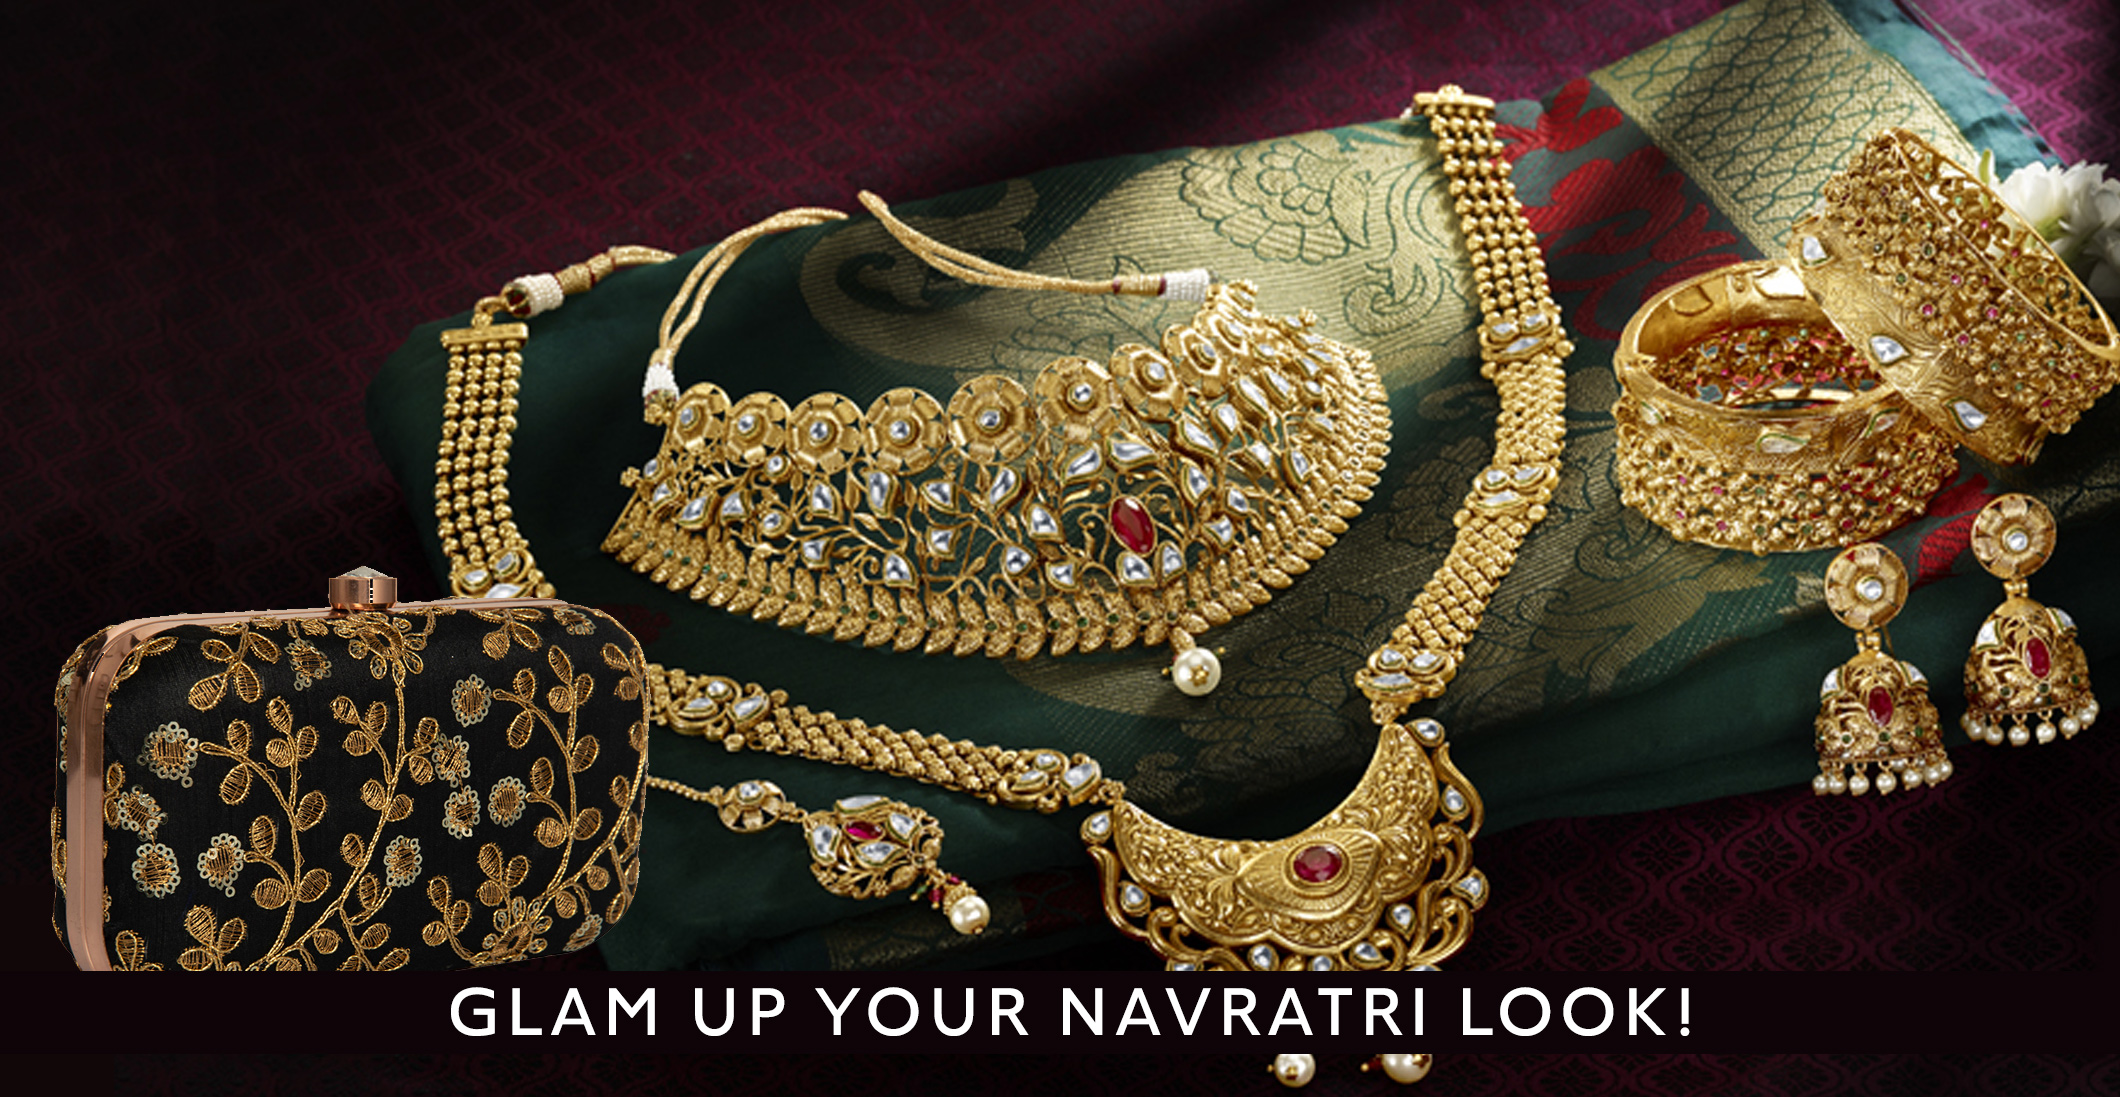 Trending Fashion Accessories To Slay The Navratri Look